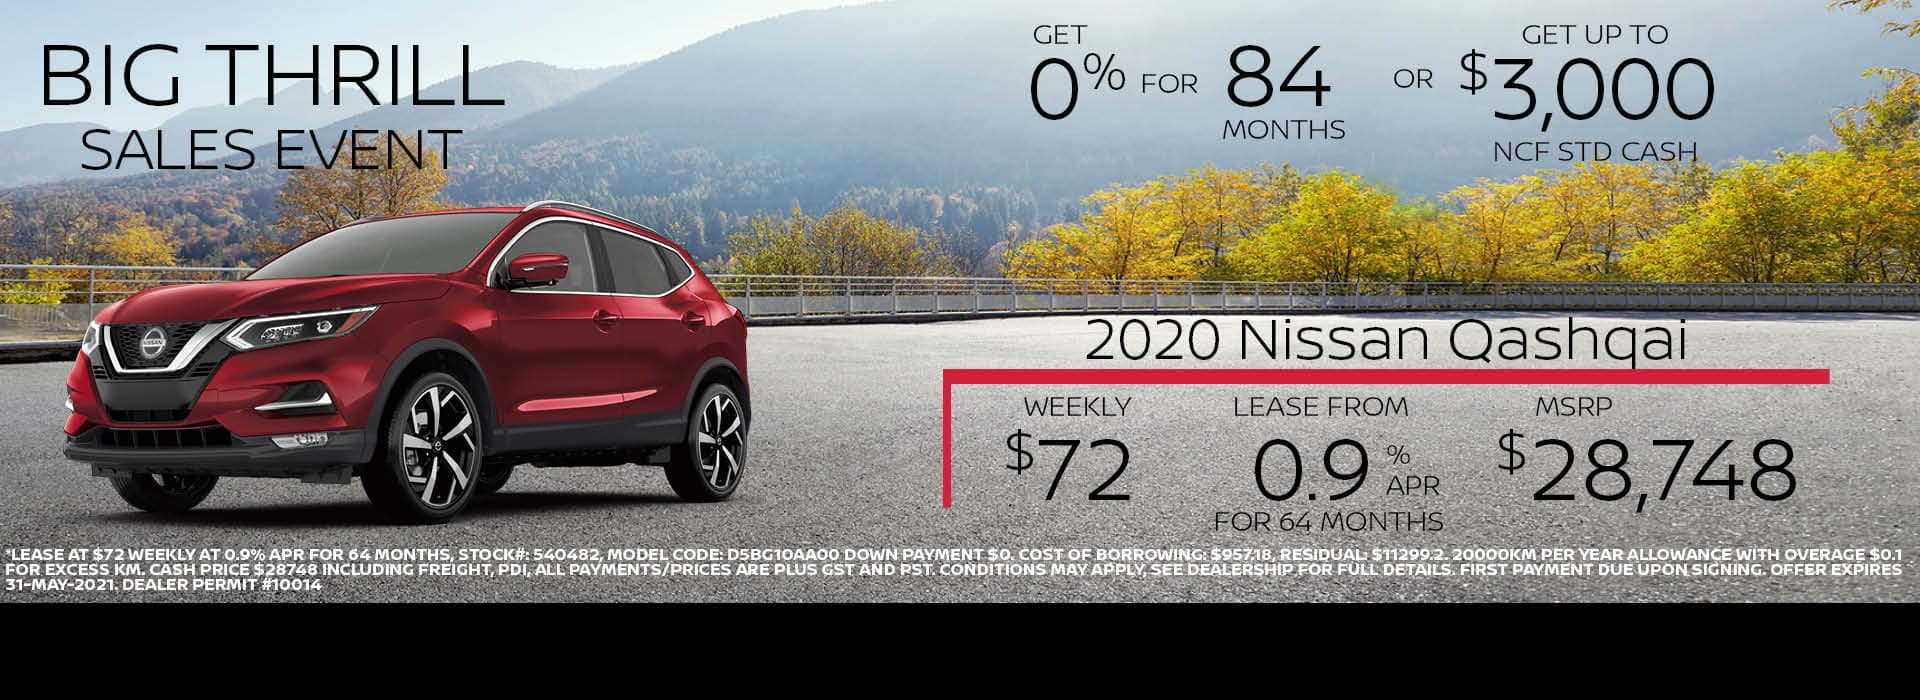 2020_Nissan_Qashqai_Desktop_Home_Page_May2021